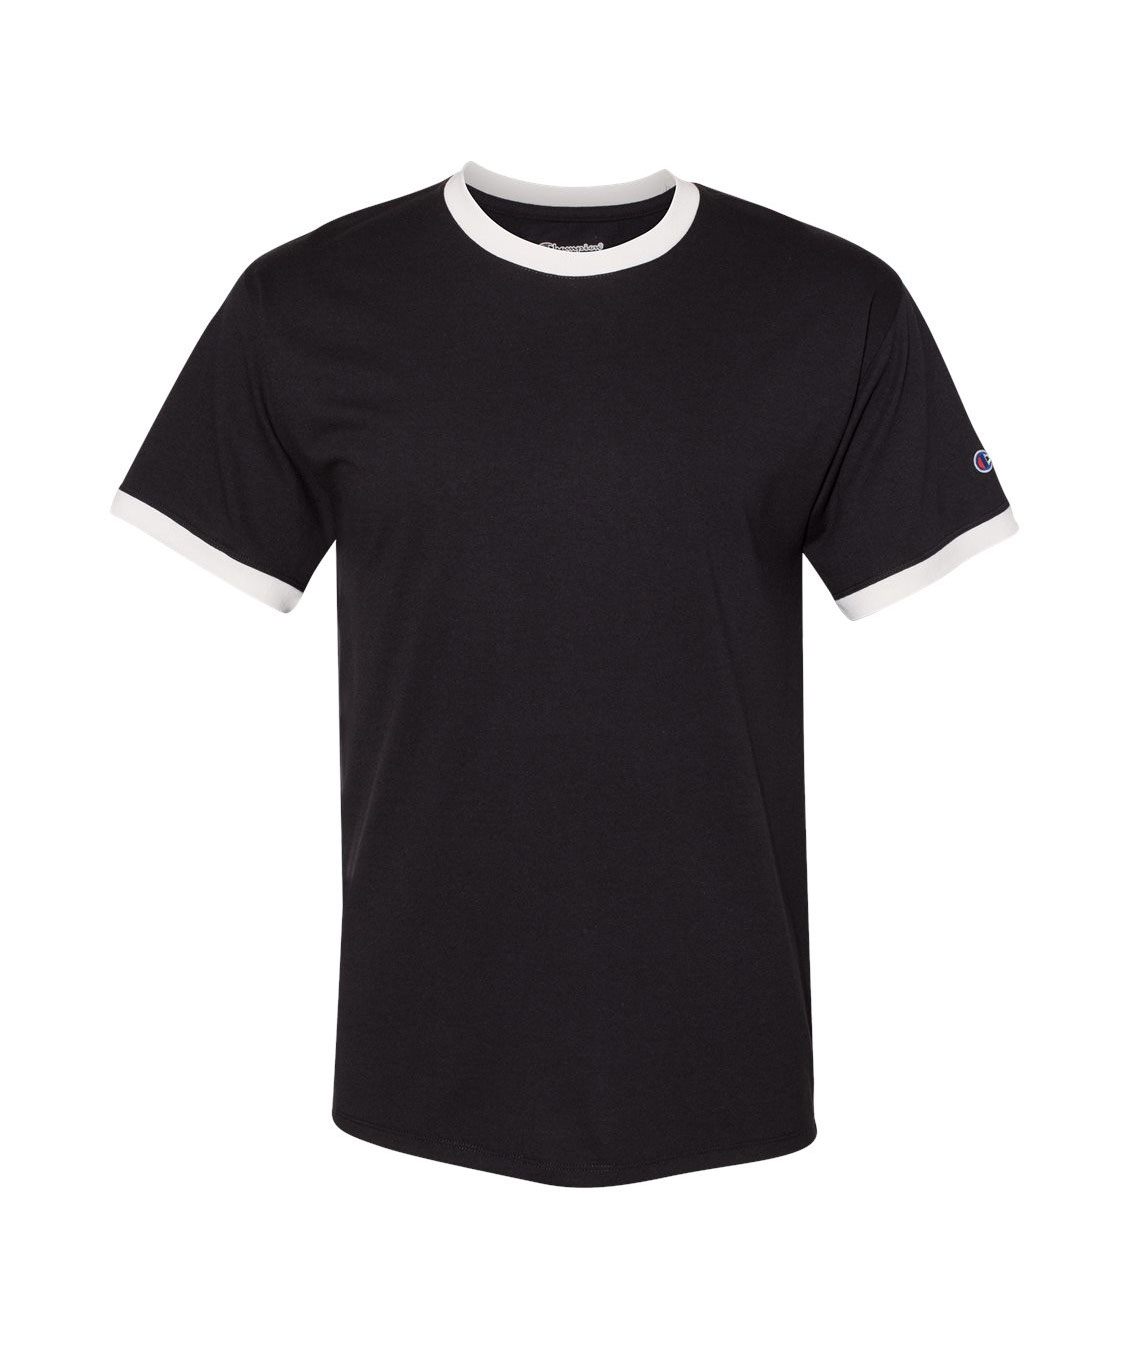 Champion® 5.7 oz. Cotton Ringer T-Shirt